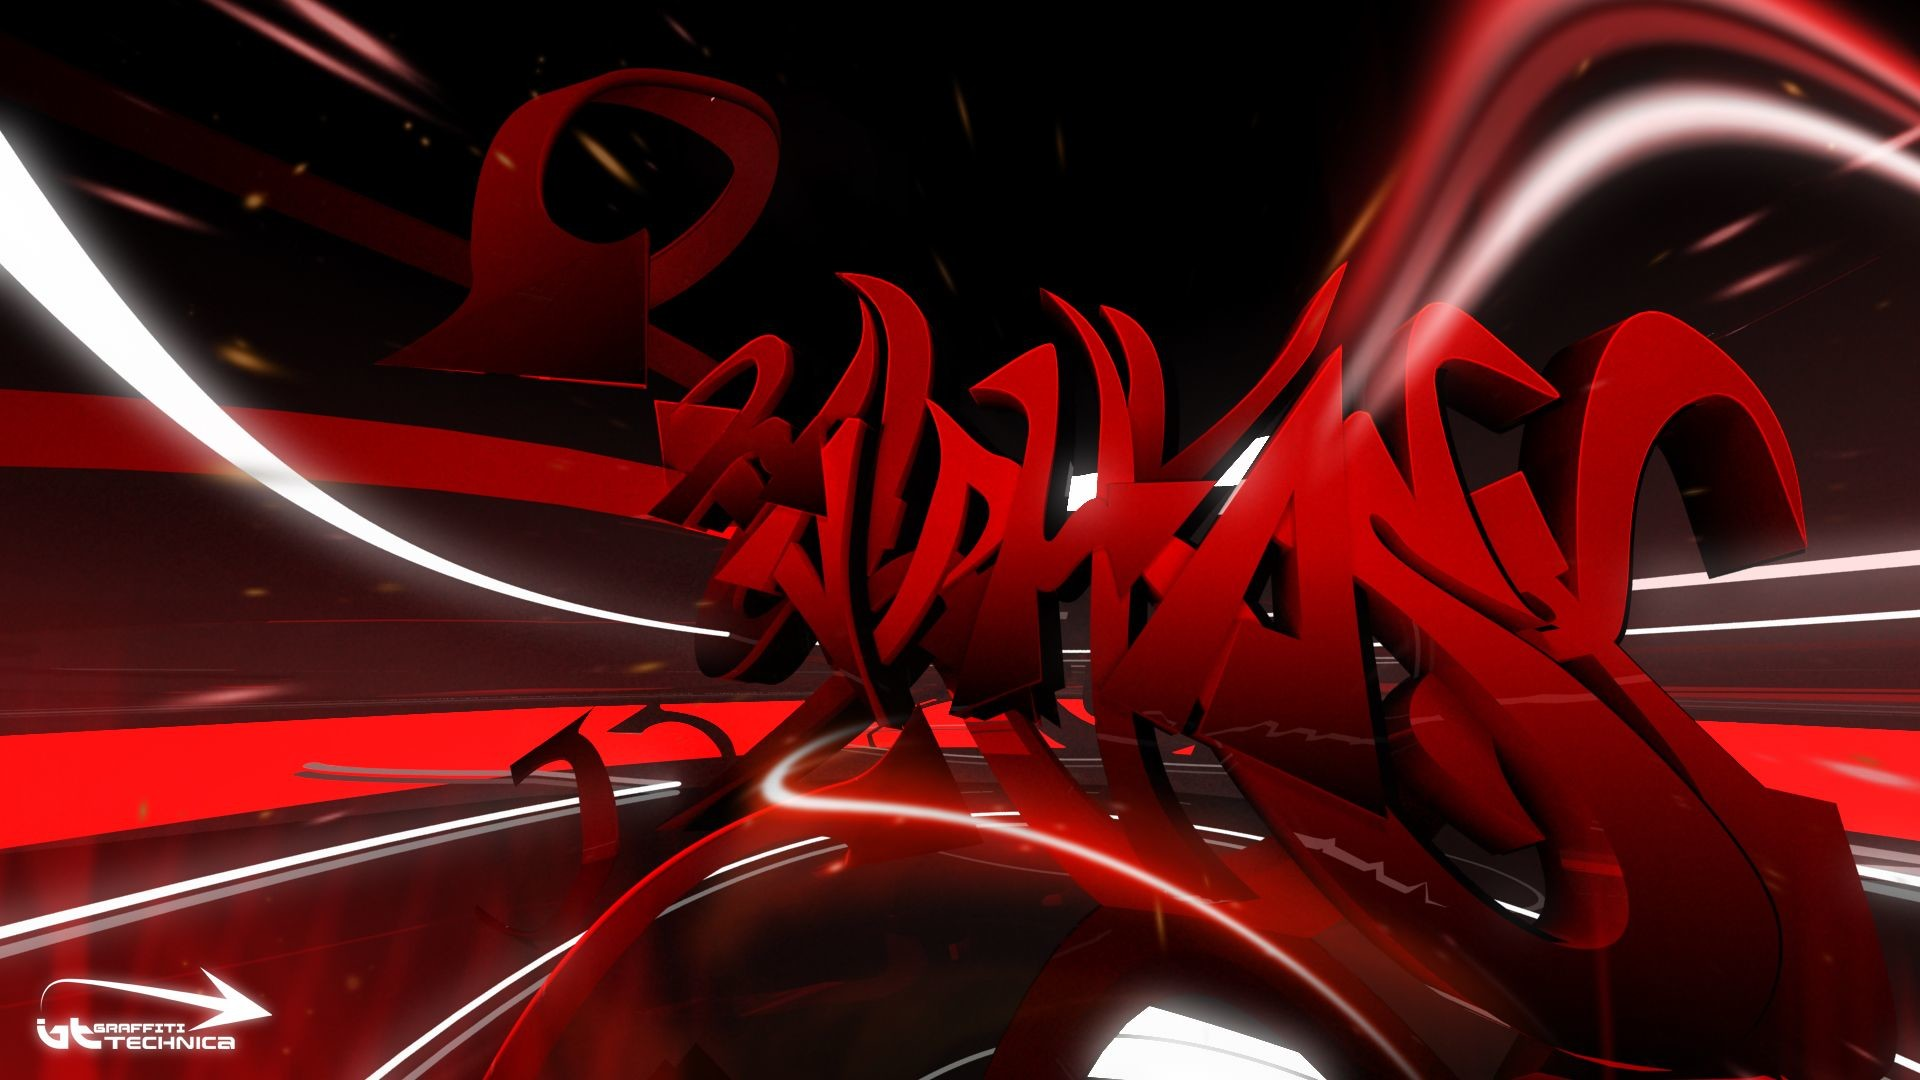 1920x1080 Abstract Art Black and White Red Wallpaper Cool HD